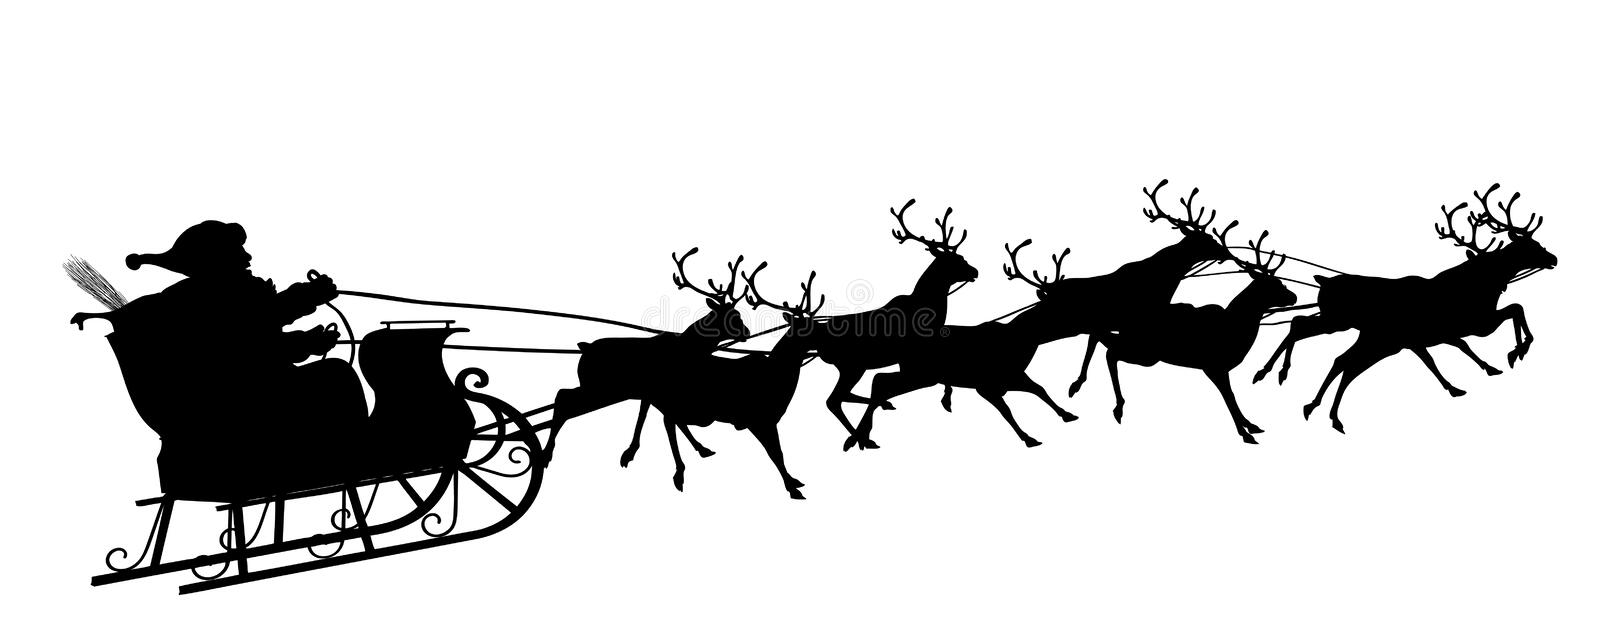 Santa Claus with Reindeer Sleigh Symbol - Black Silhouette stock illustration